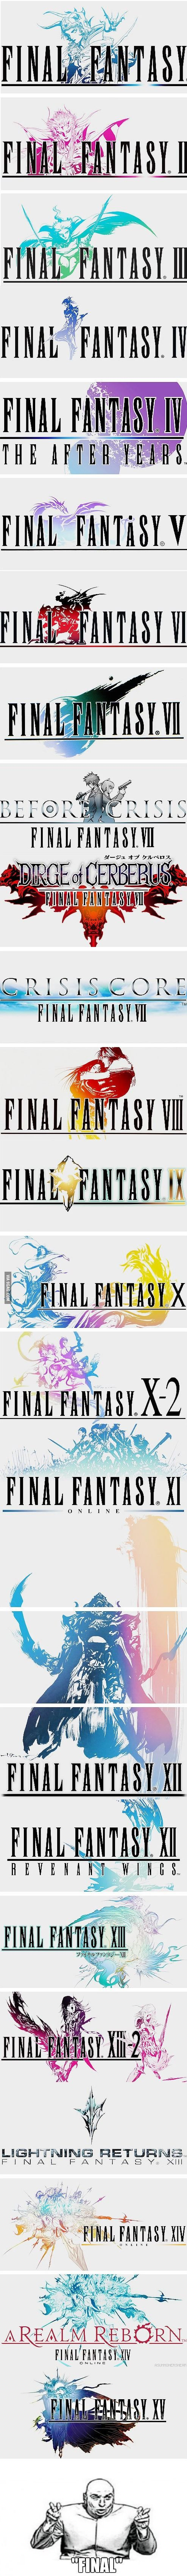 "Clearly there is no such thing as a ""final"" Final Fantasy."